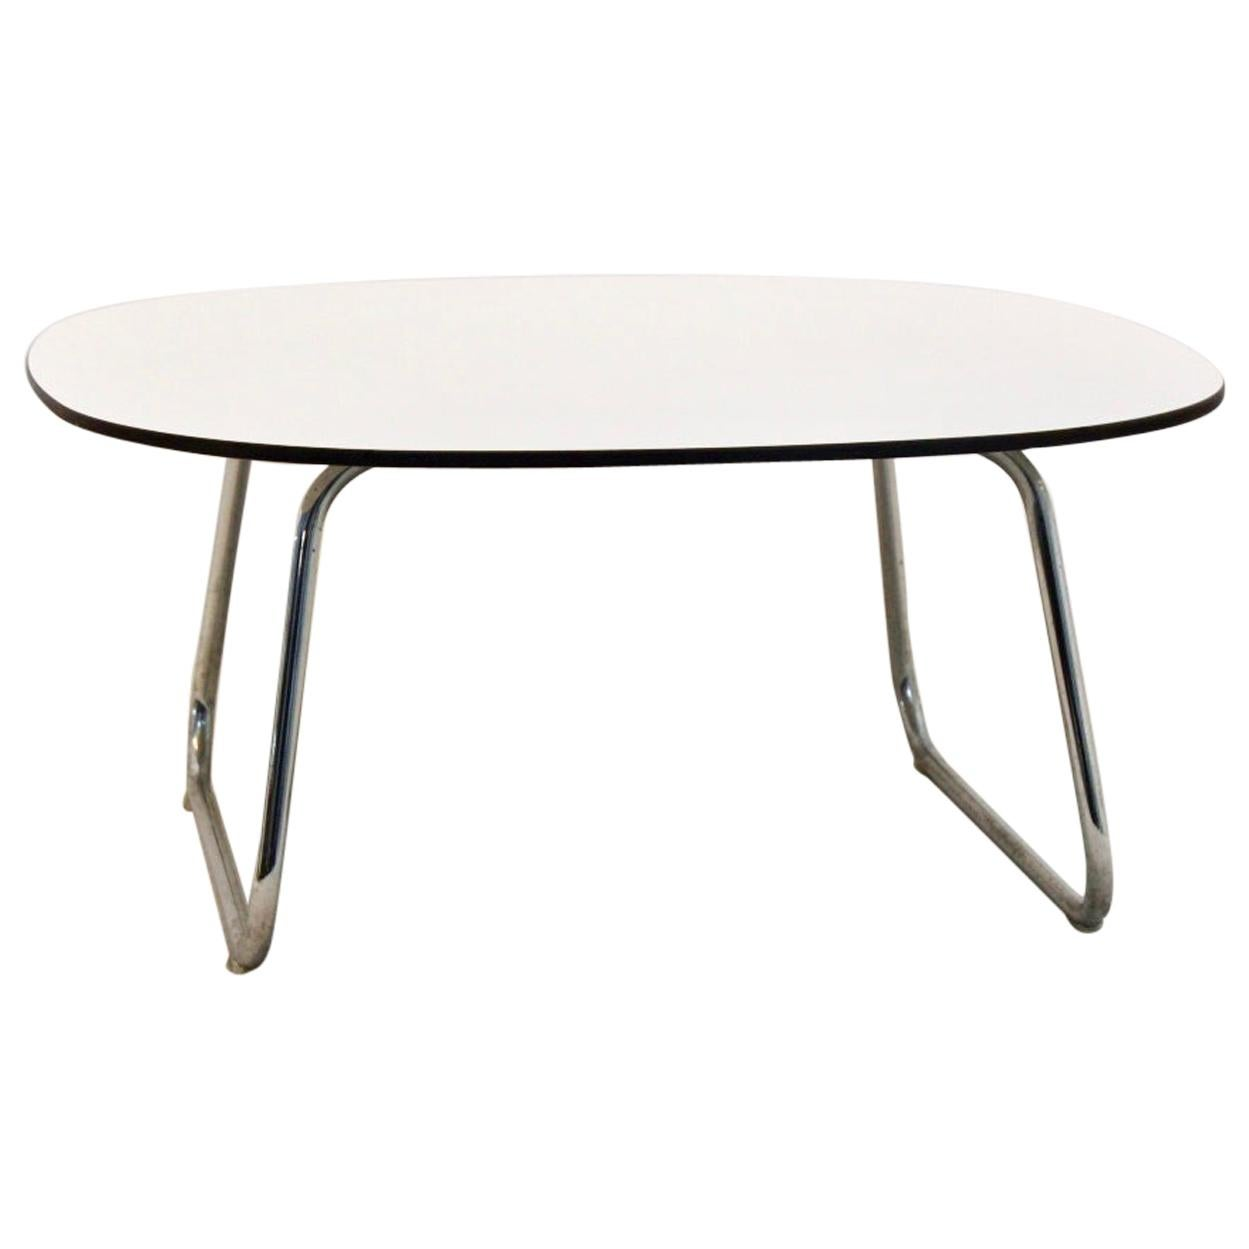 Jasper Morrison 'Vega' Table for Artifort